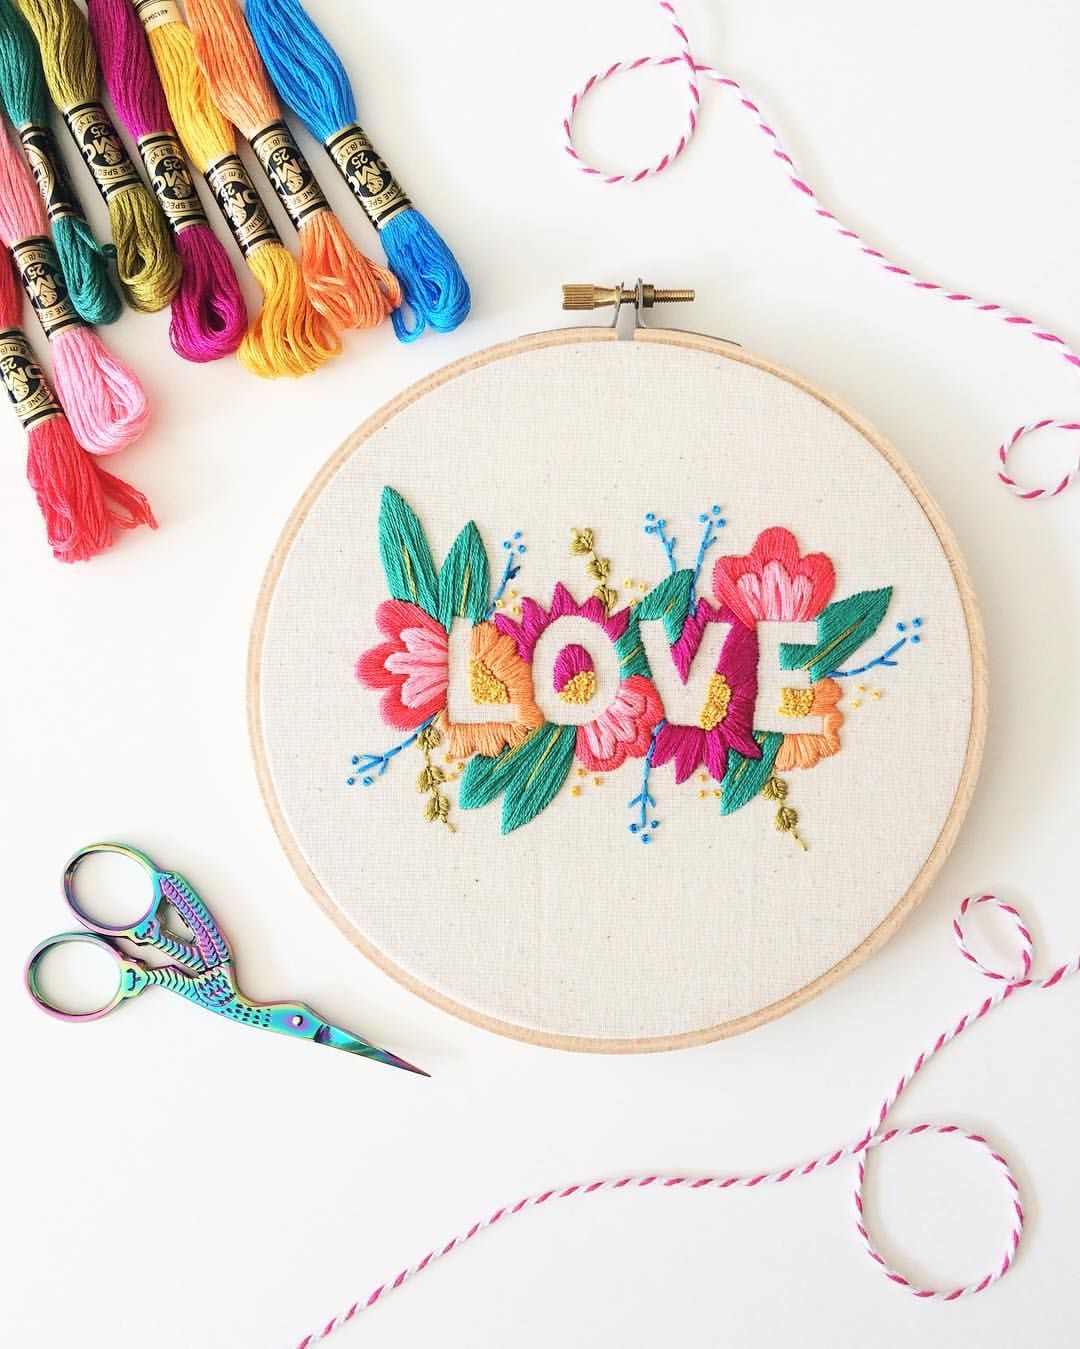 Pin by Zoe Closs on cross stitch and embroidery | Pinterest ...